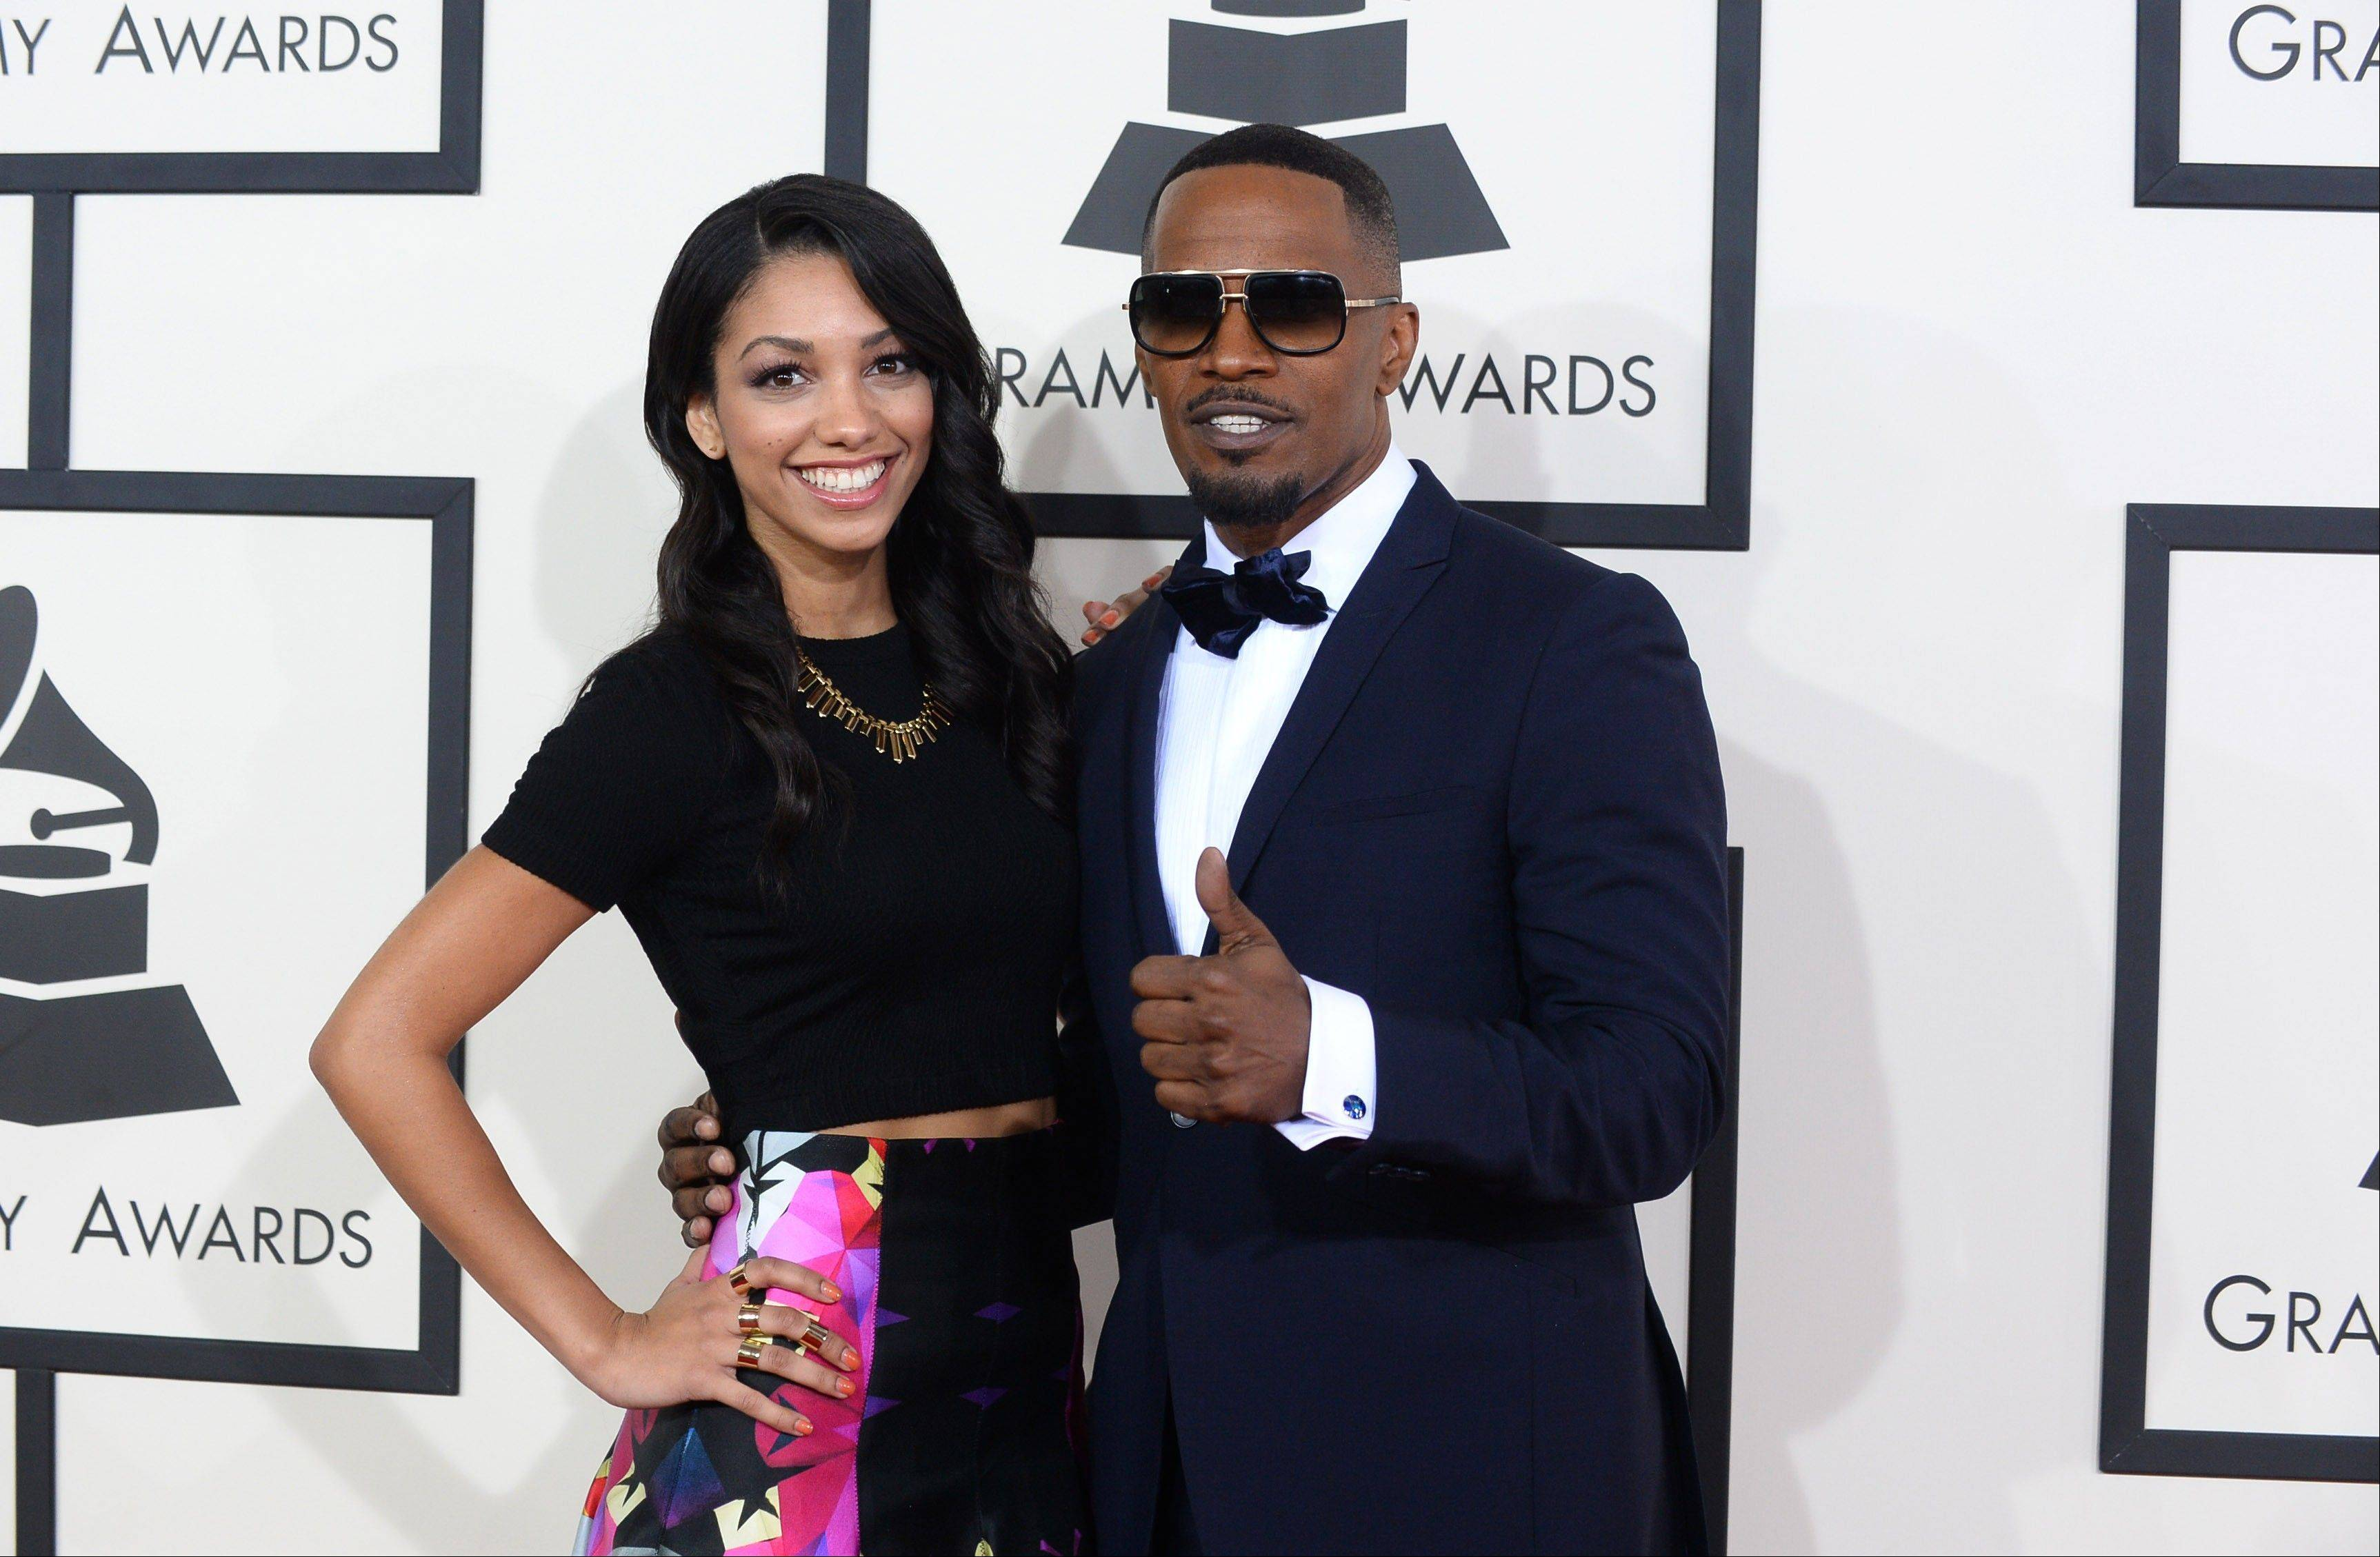 Corinne Bishop and Jamie Foxx arrive at the 56th annual Grammy Awards.